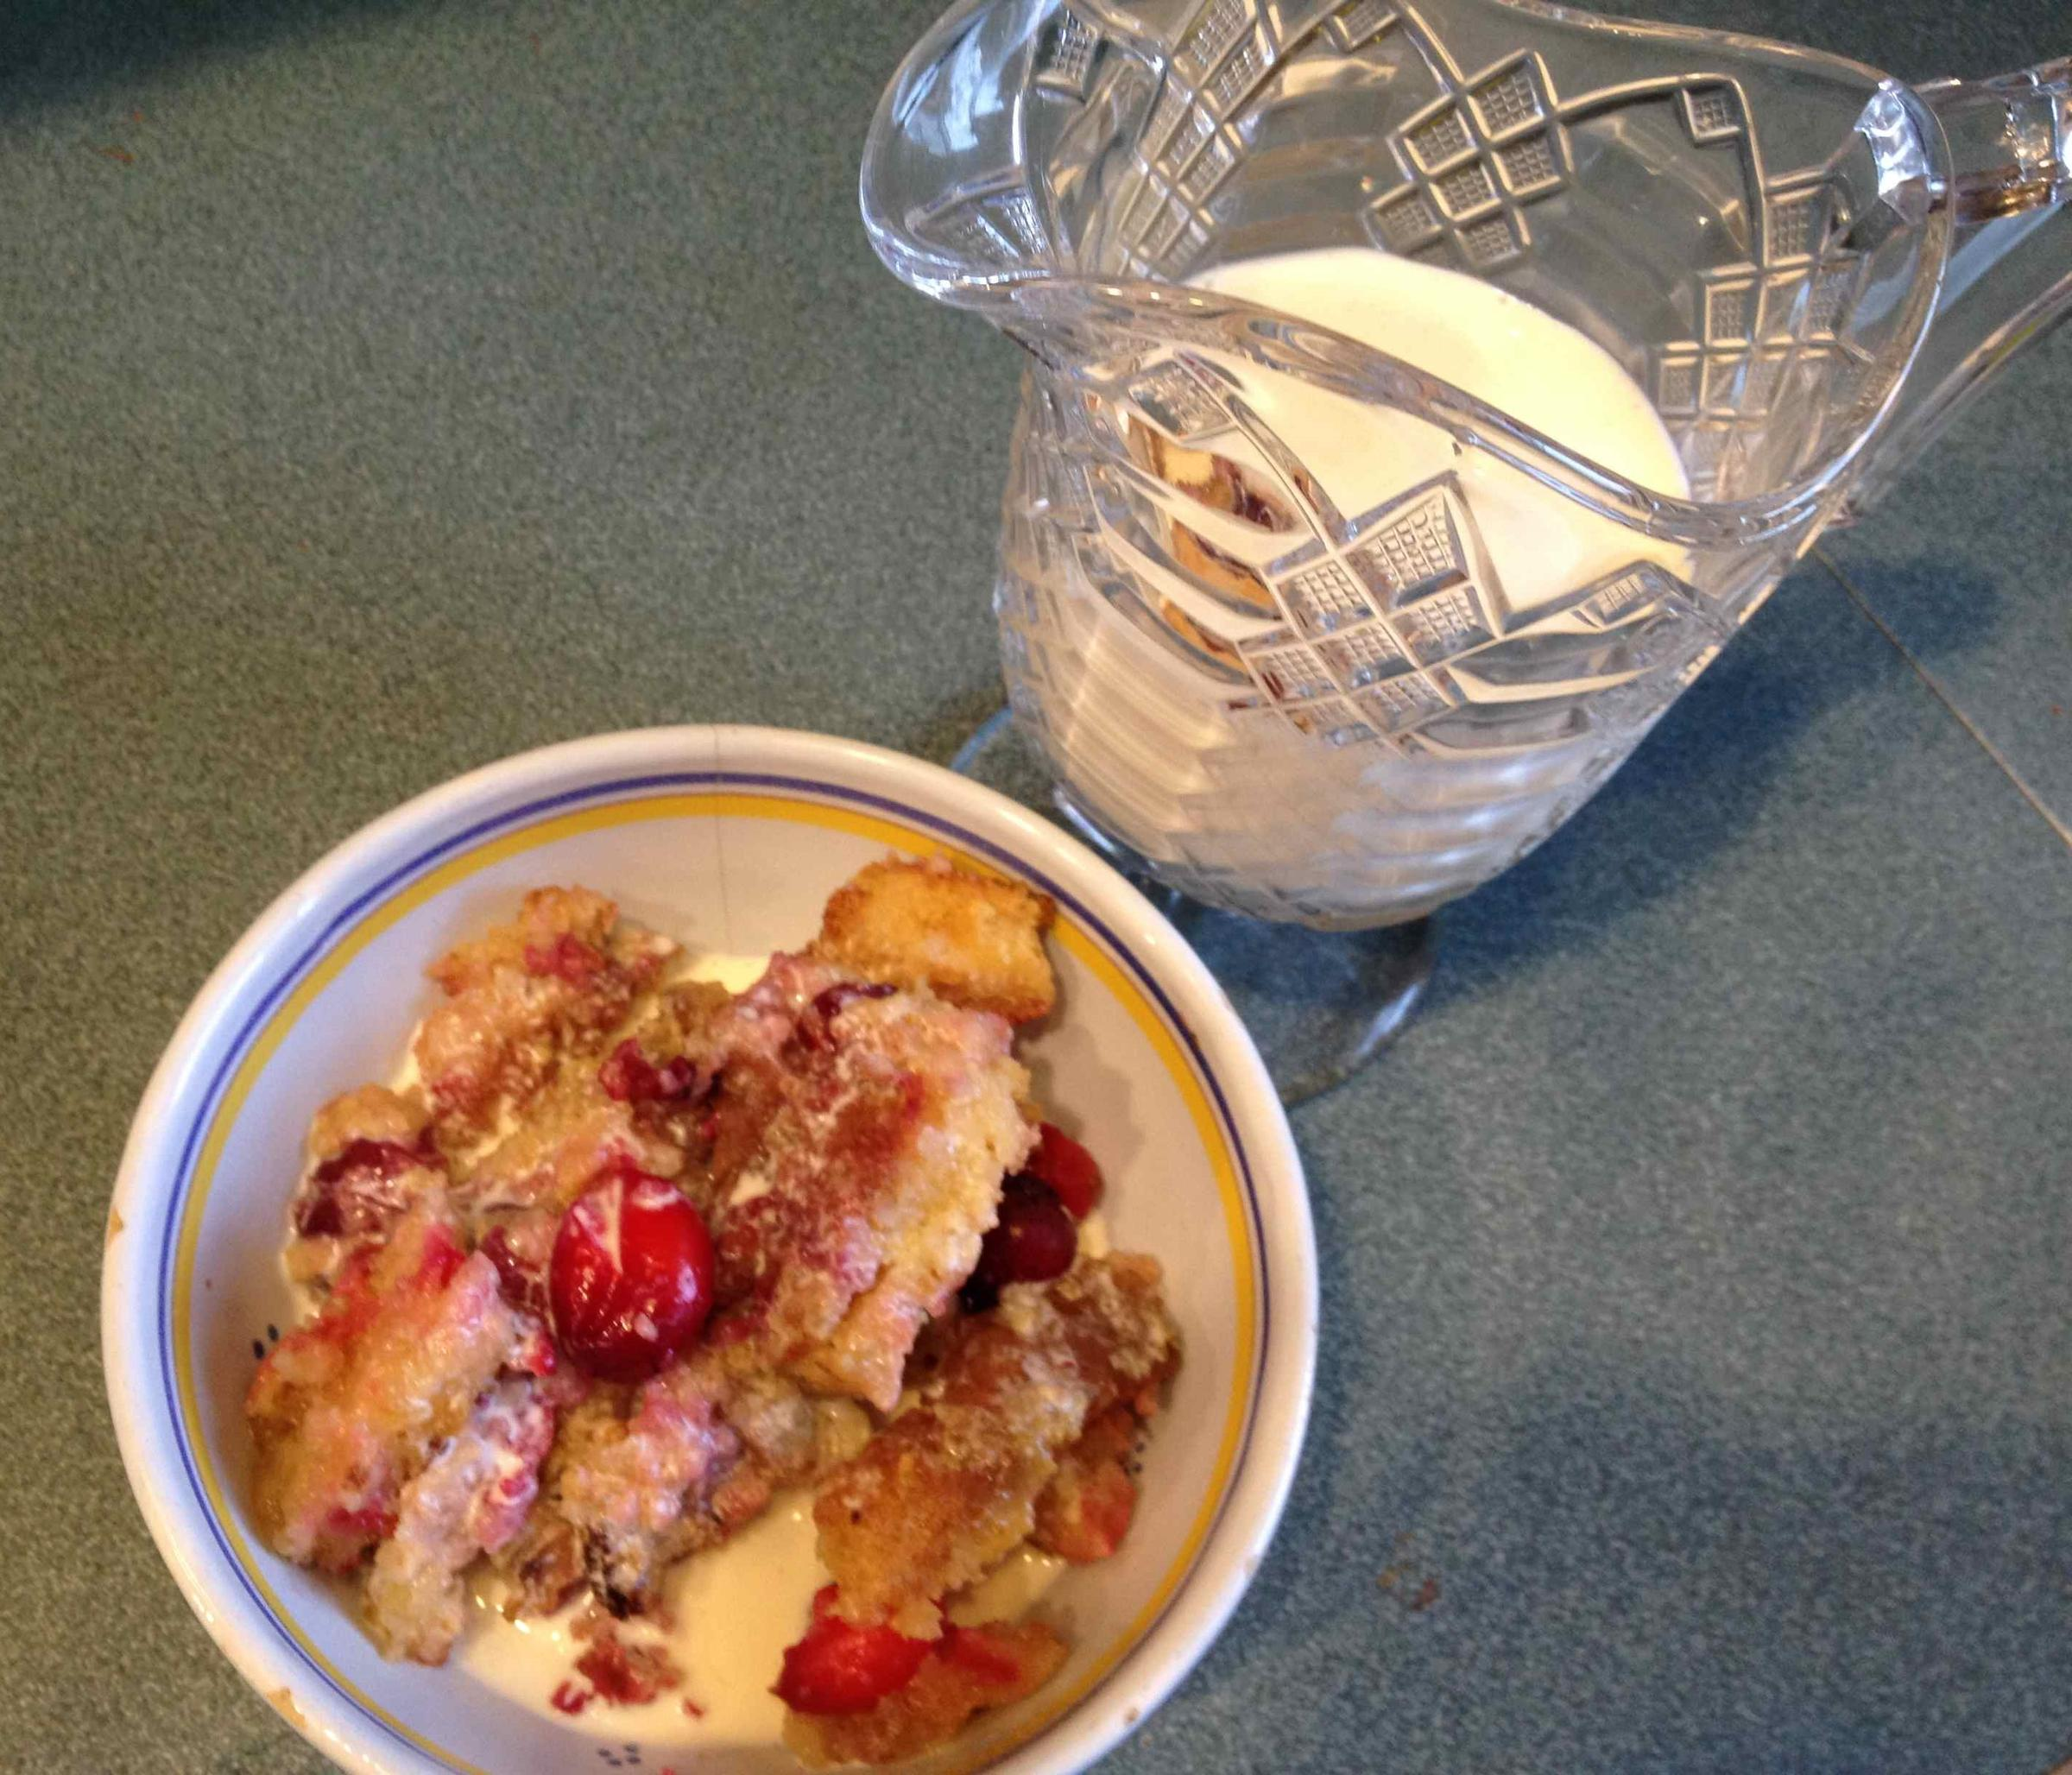 ... tradition, Candace Page suggests maple cranberry bread pudding